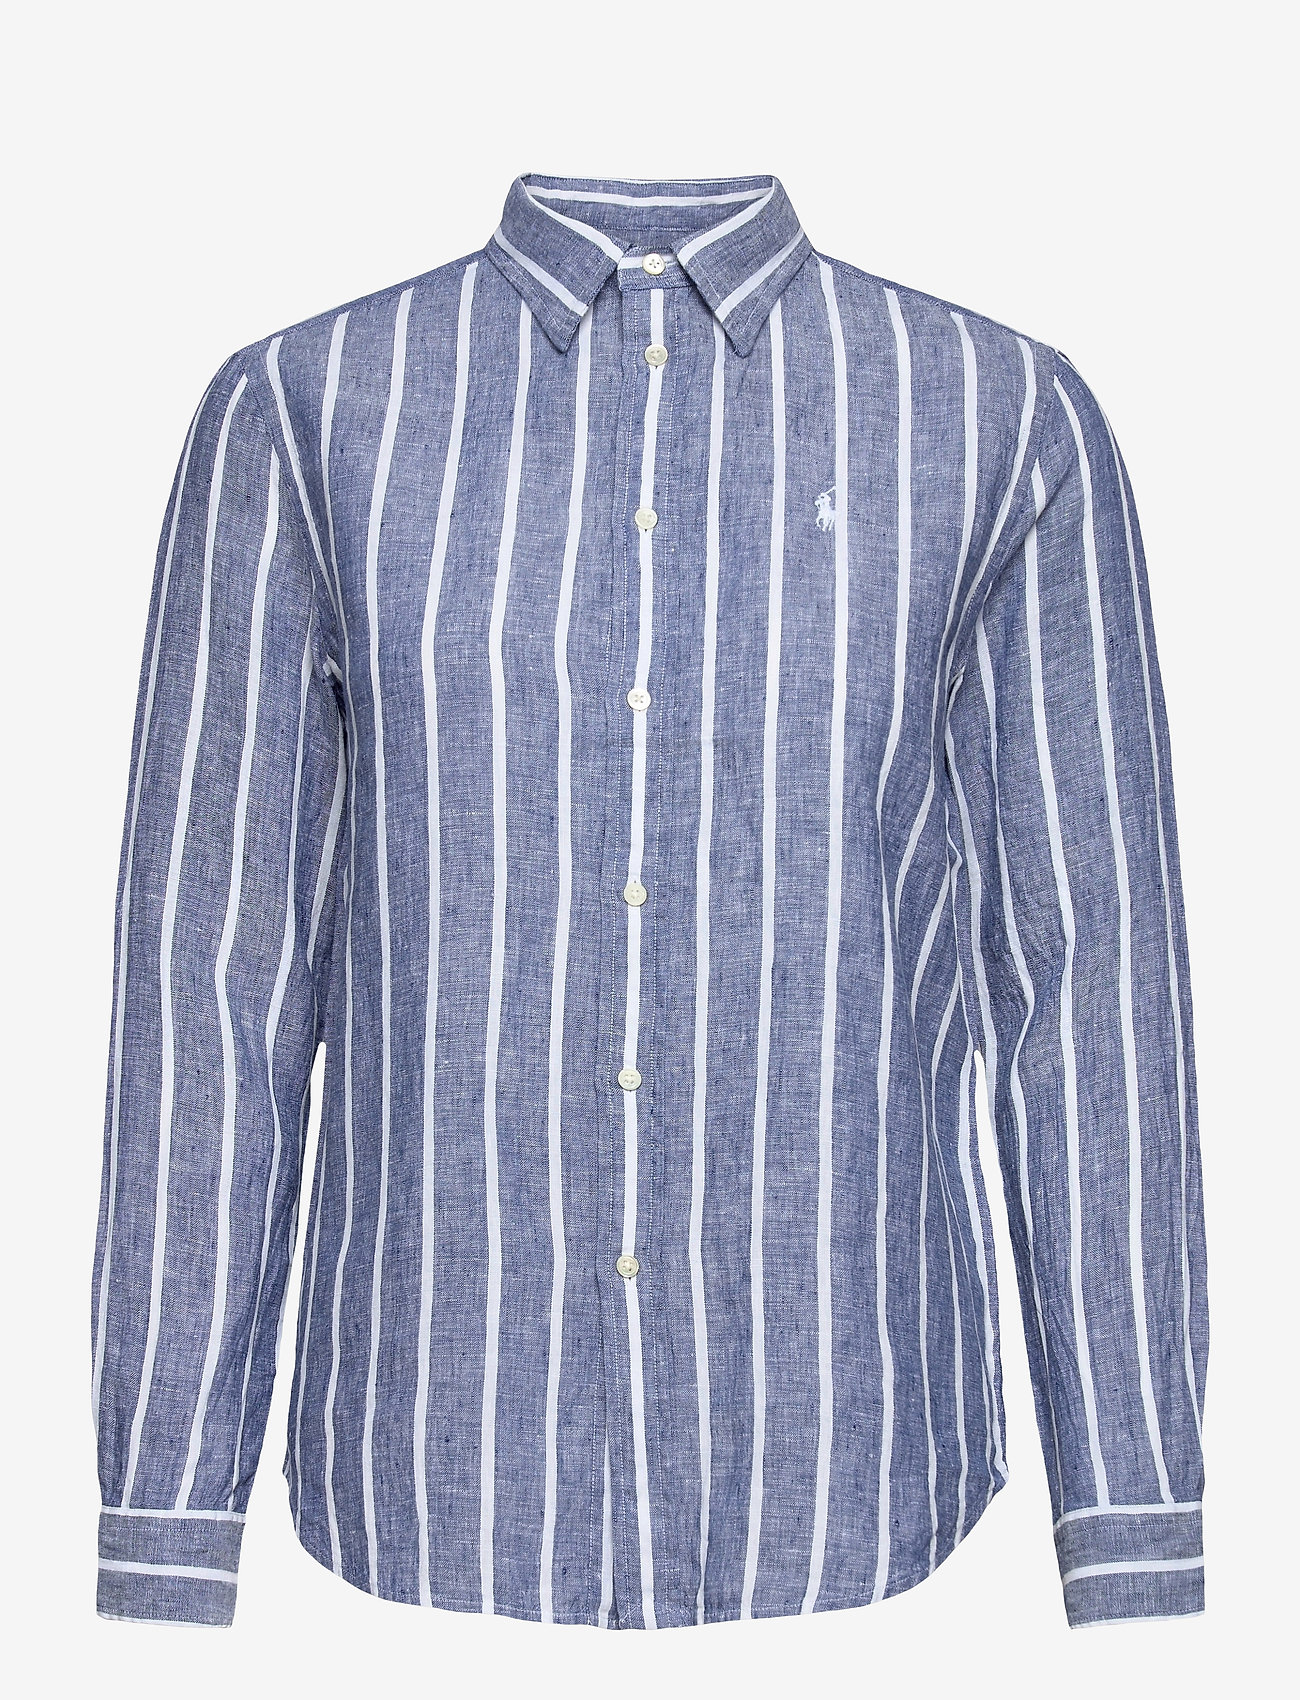 Polo Ralph Lauren - Relaxed Fit Linen Shirt - langærmede skjorter - 927 navy/white - 1